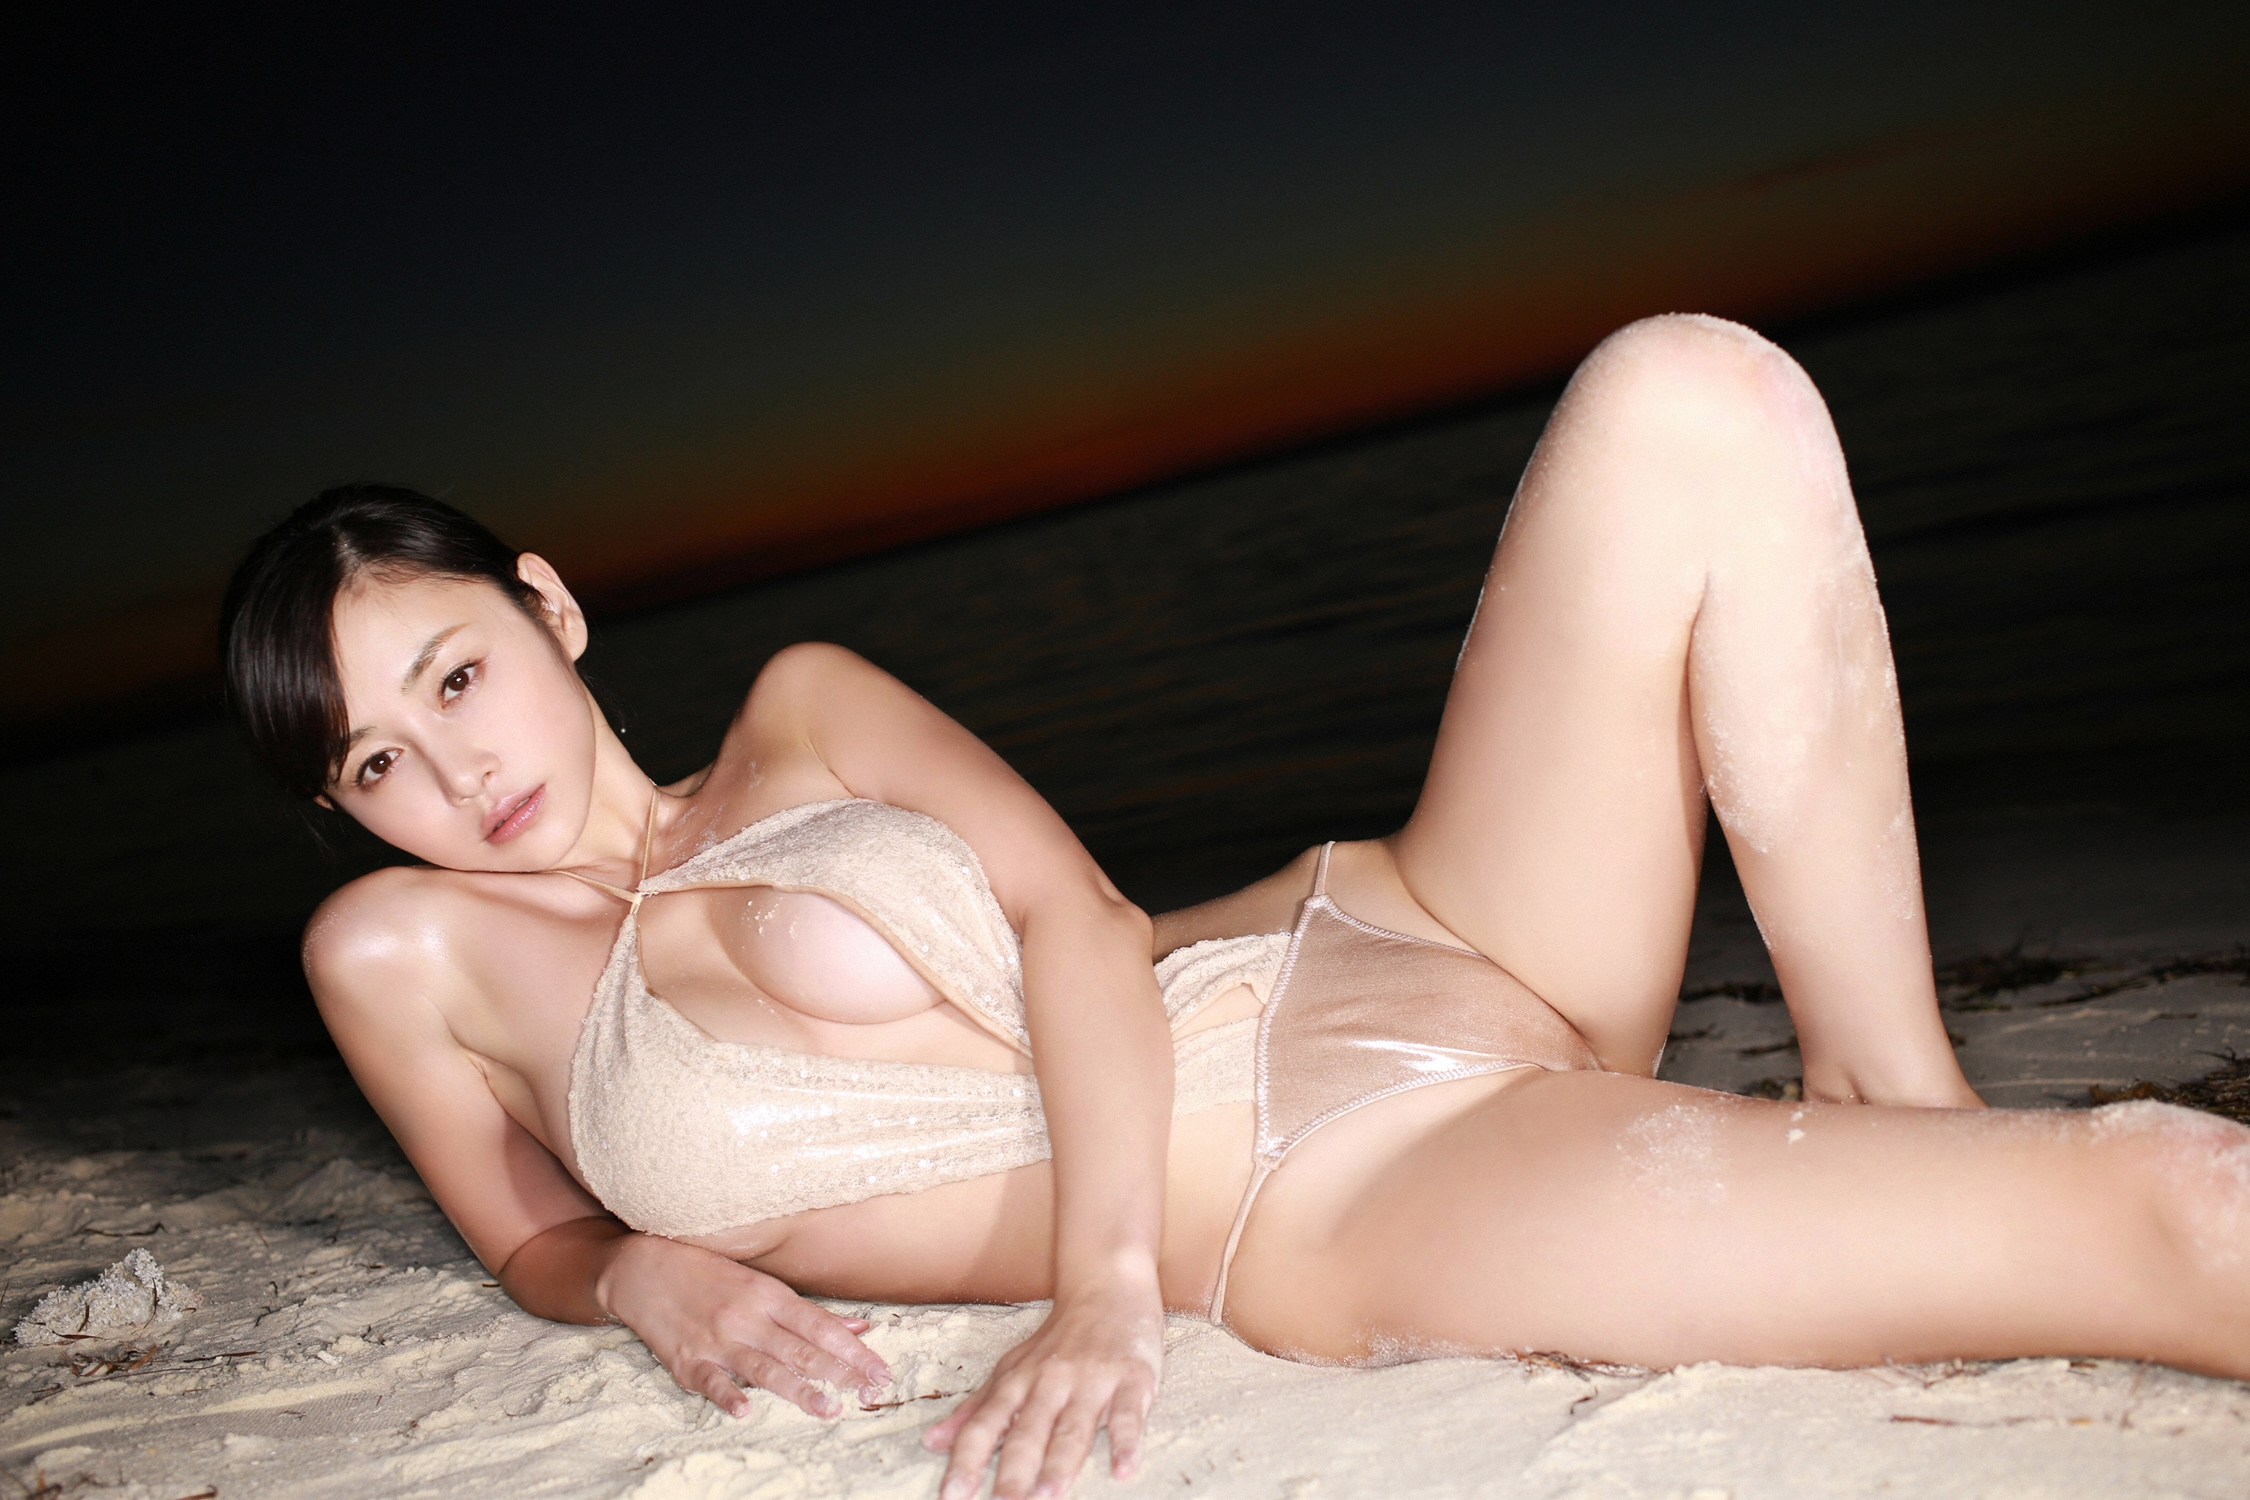 杉原杏璃 Anri Sugihara YS Web Vol 655 Pictures 73